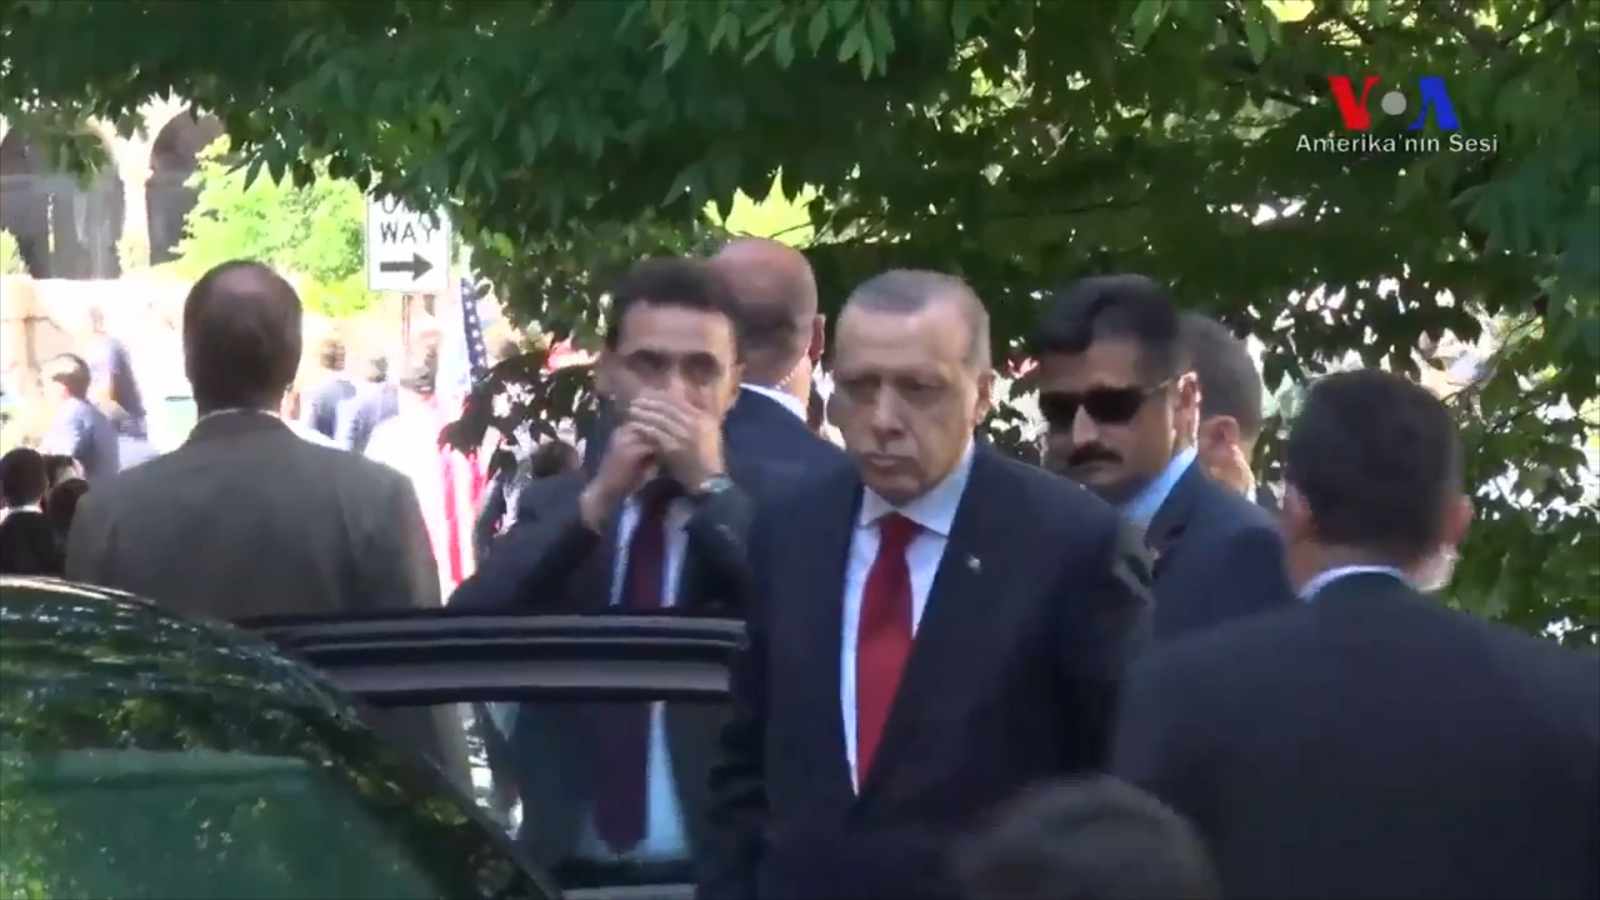 turkish-security-clashes-with-protesters-in-washington-as-erdogan-looks-on